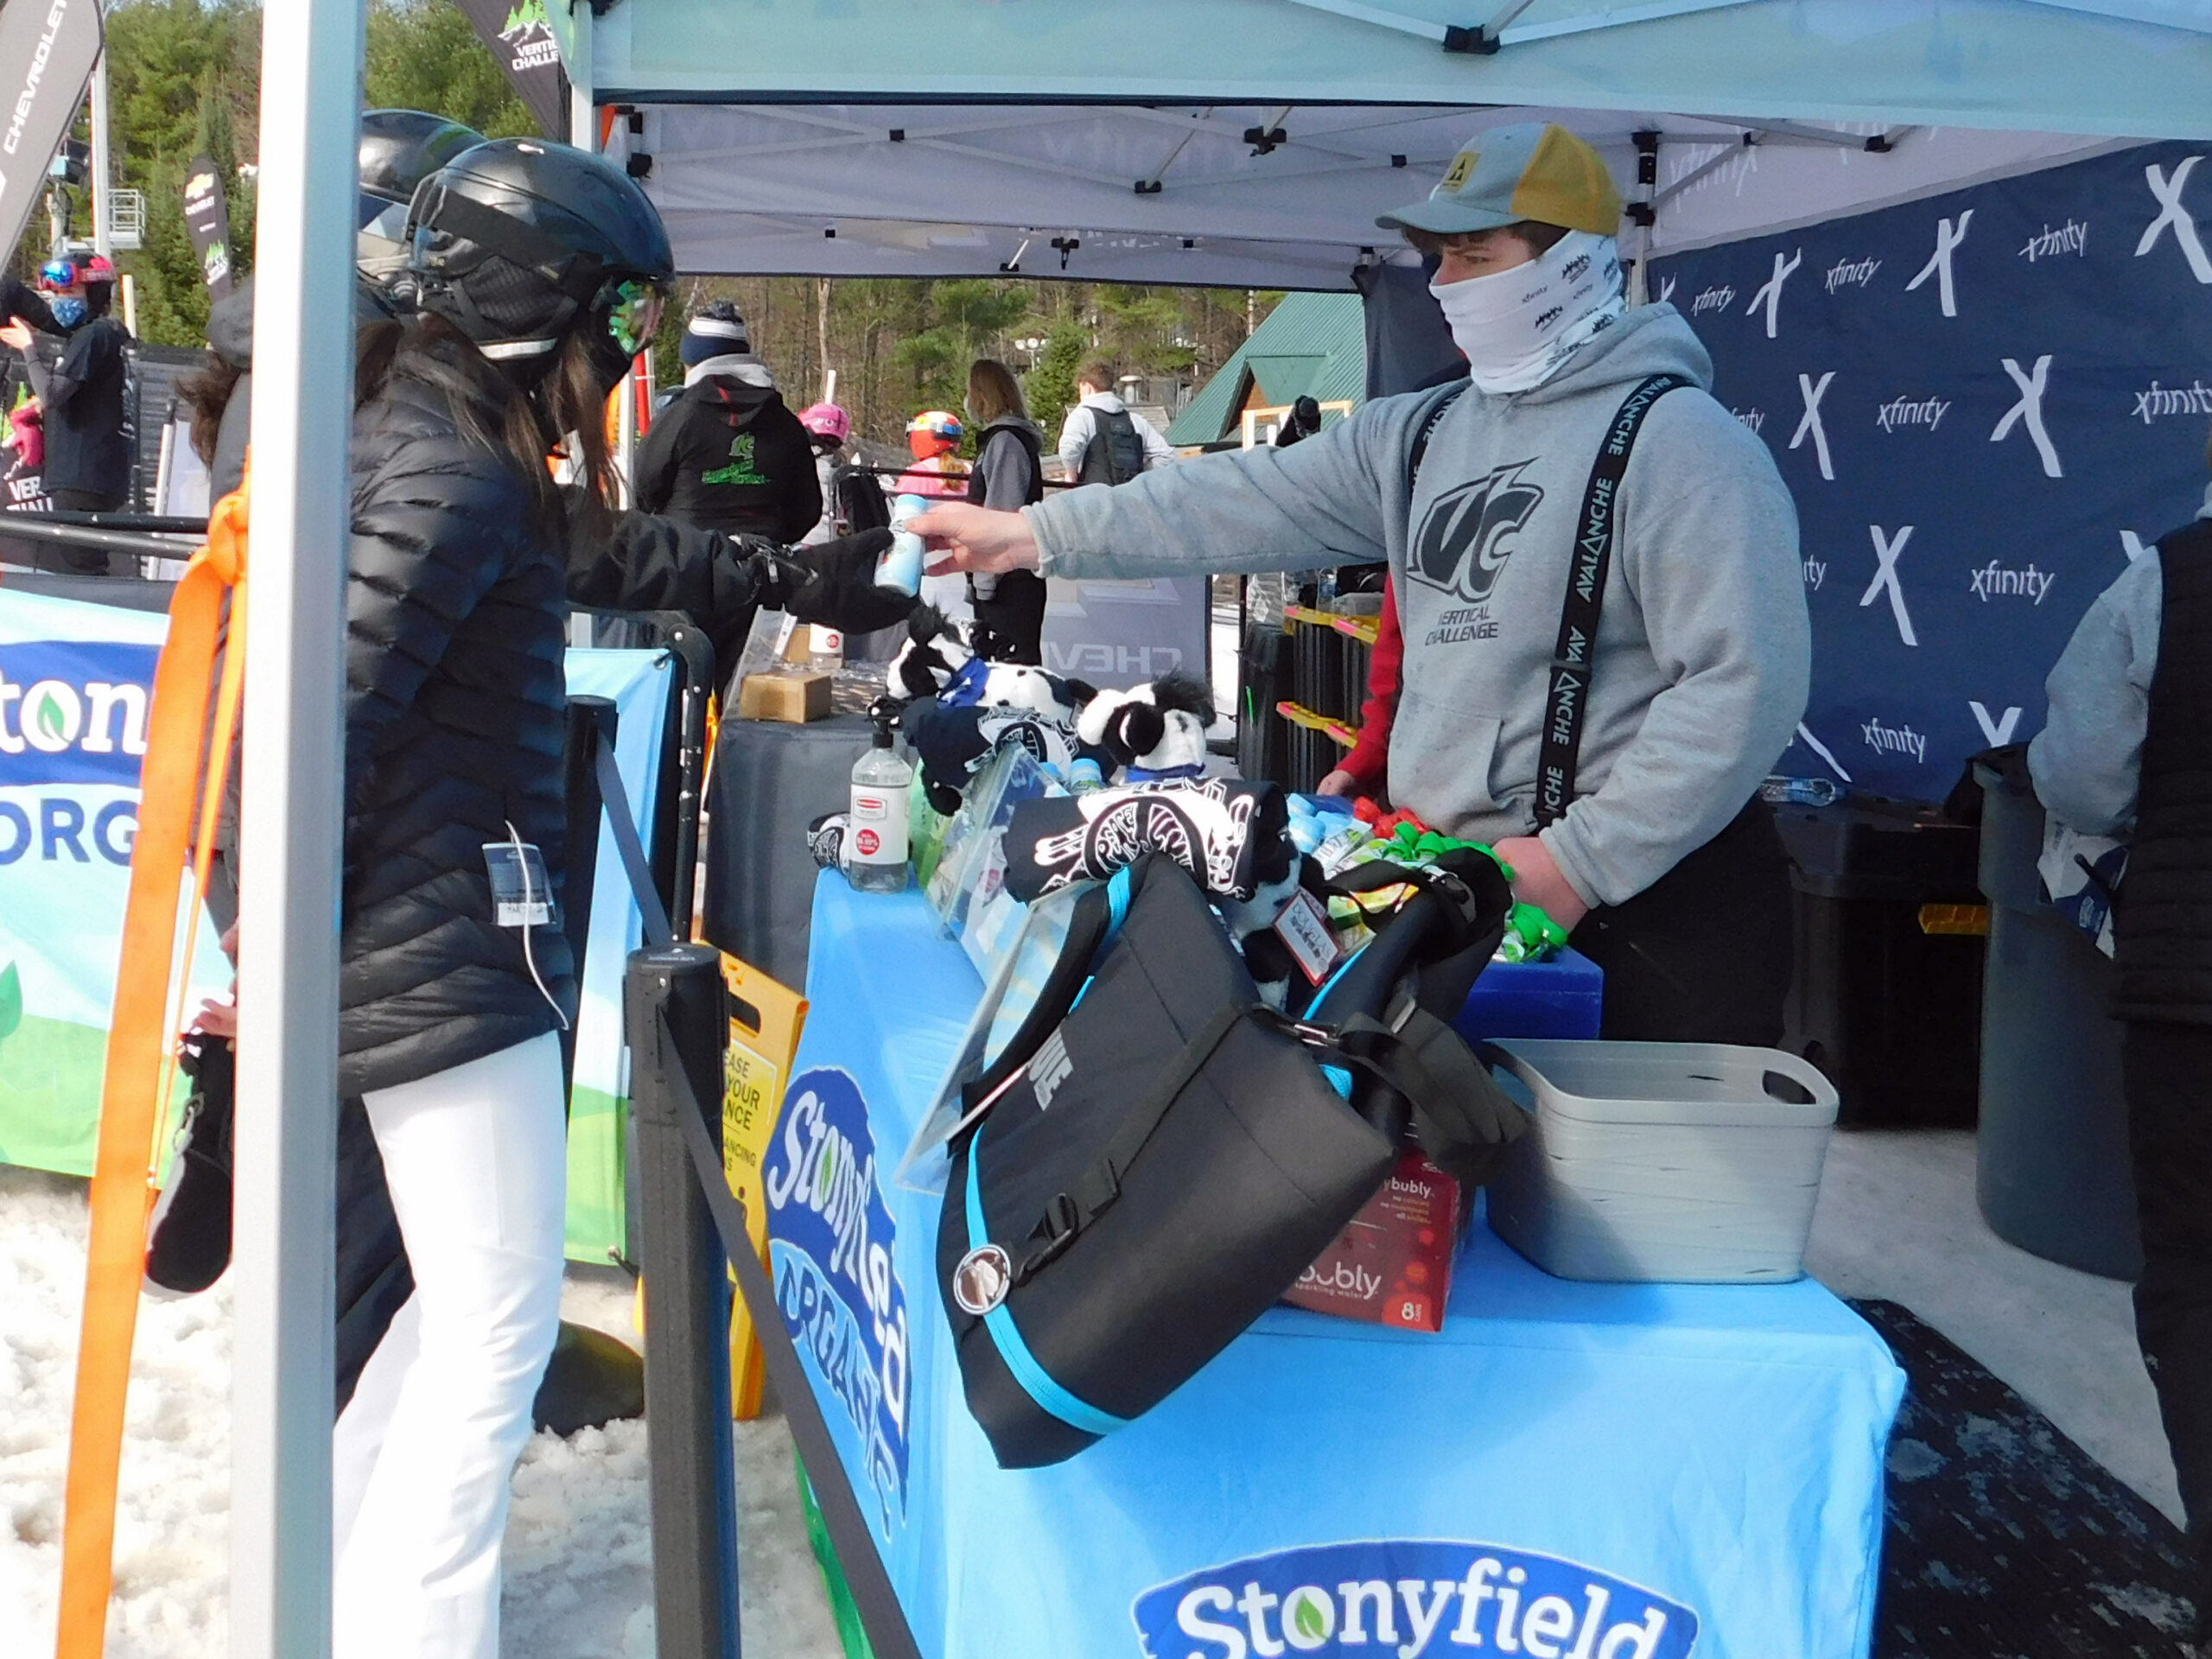 Samples From Stonyfield at the VC